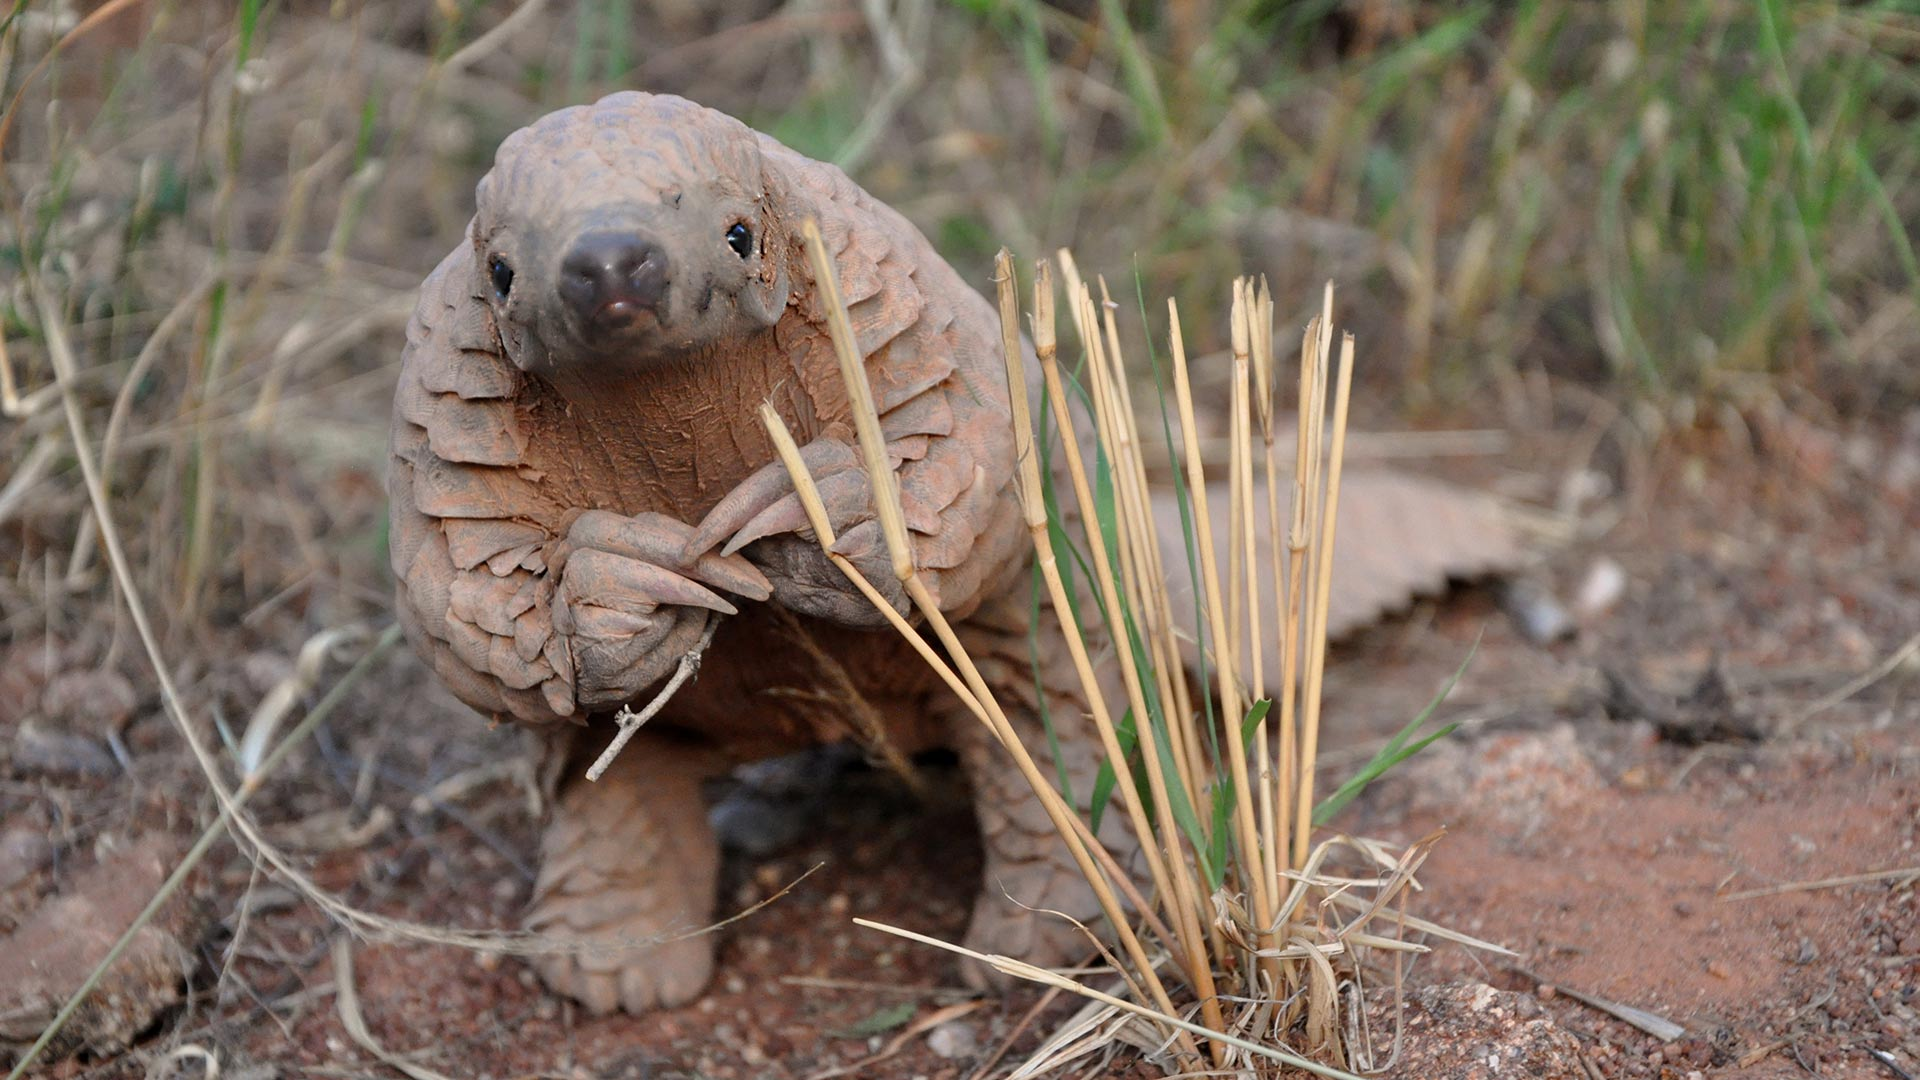 Almost nothing is known about the lives of pangolins in the wild, yet they have become the most trafficked wild mammal in the world.